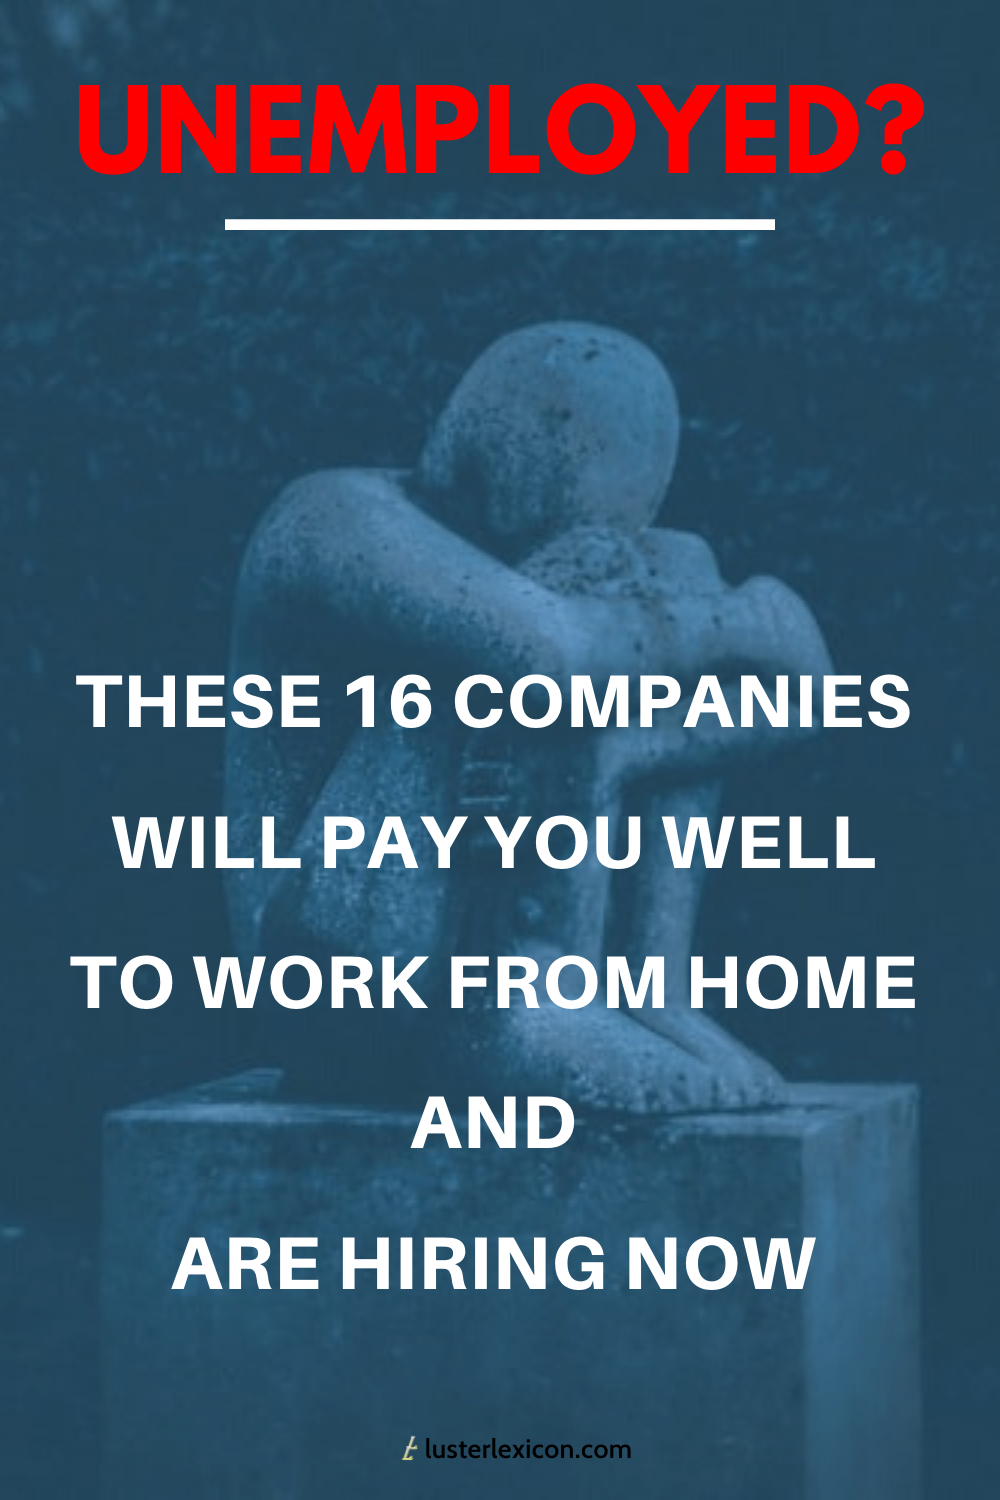 These 16 companies will pay you well to work from